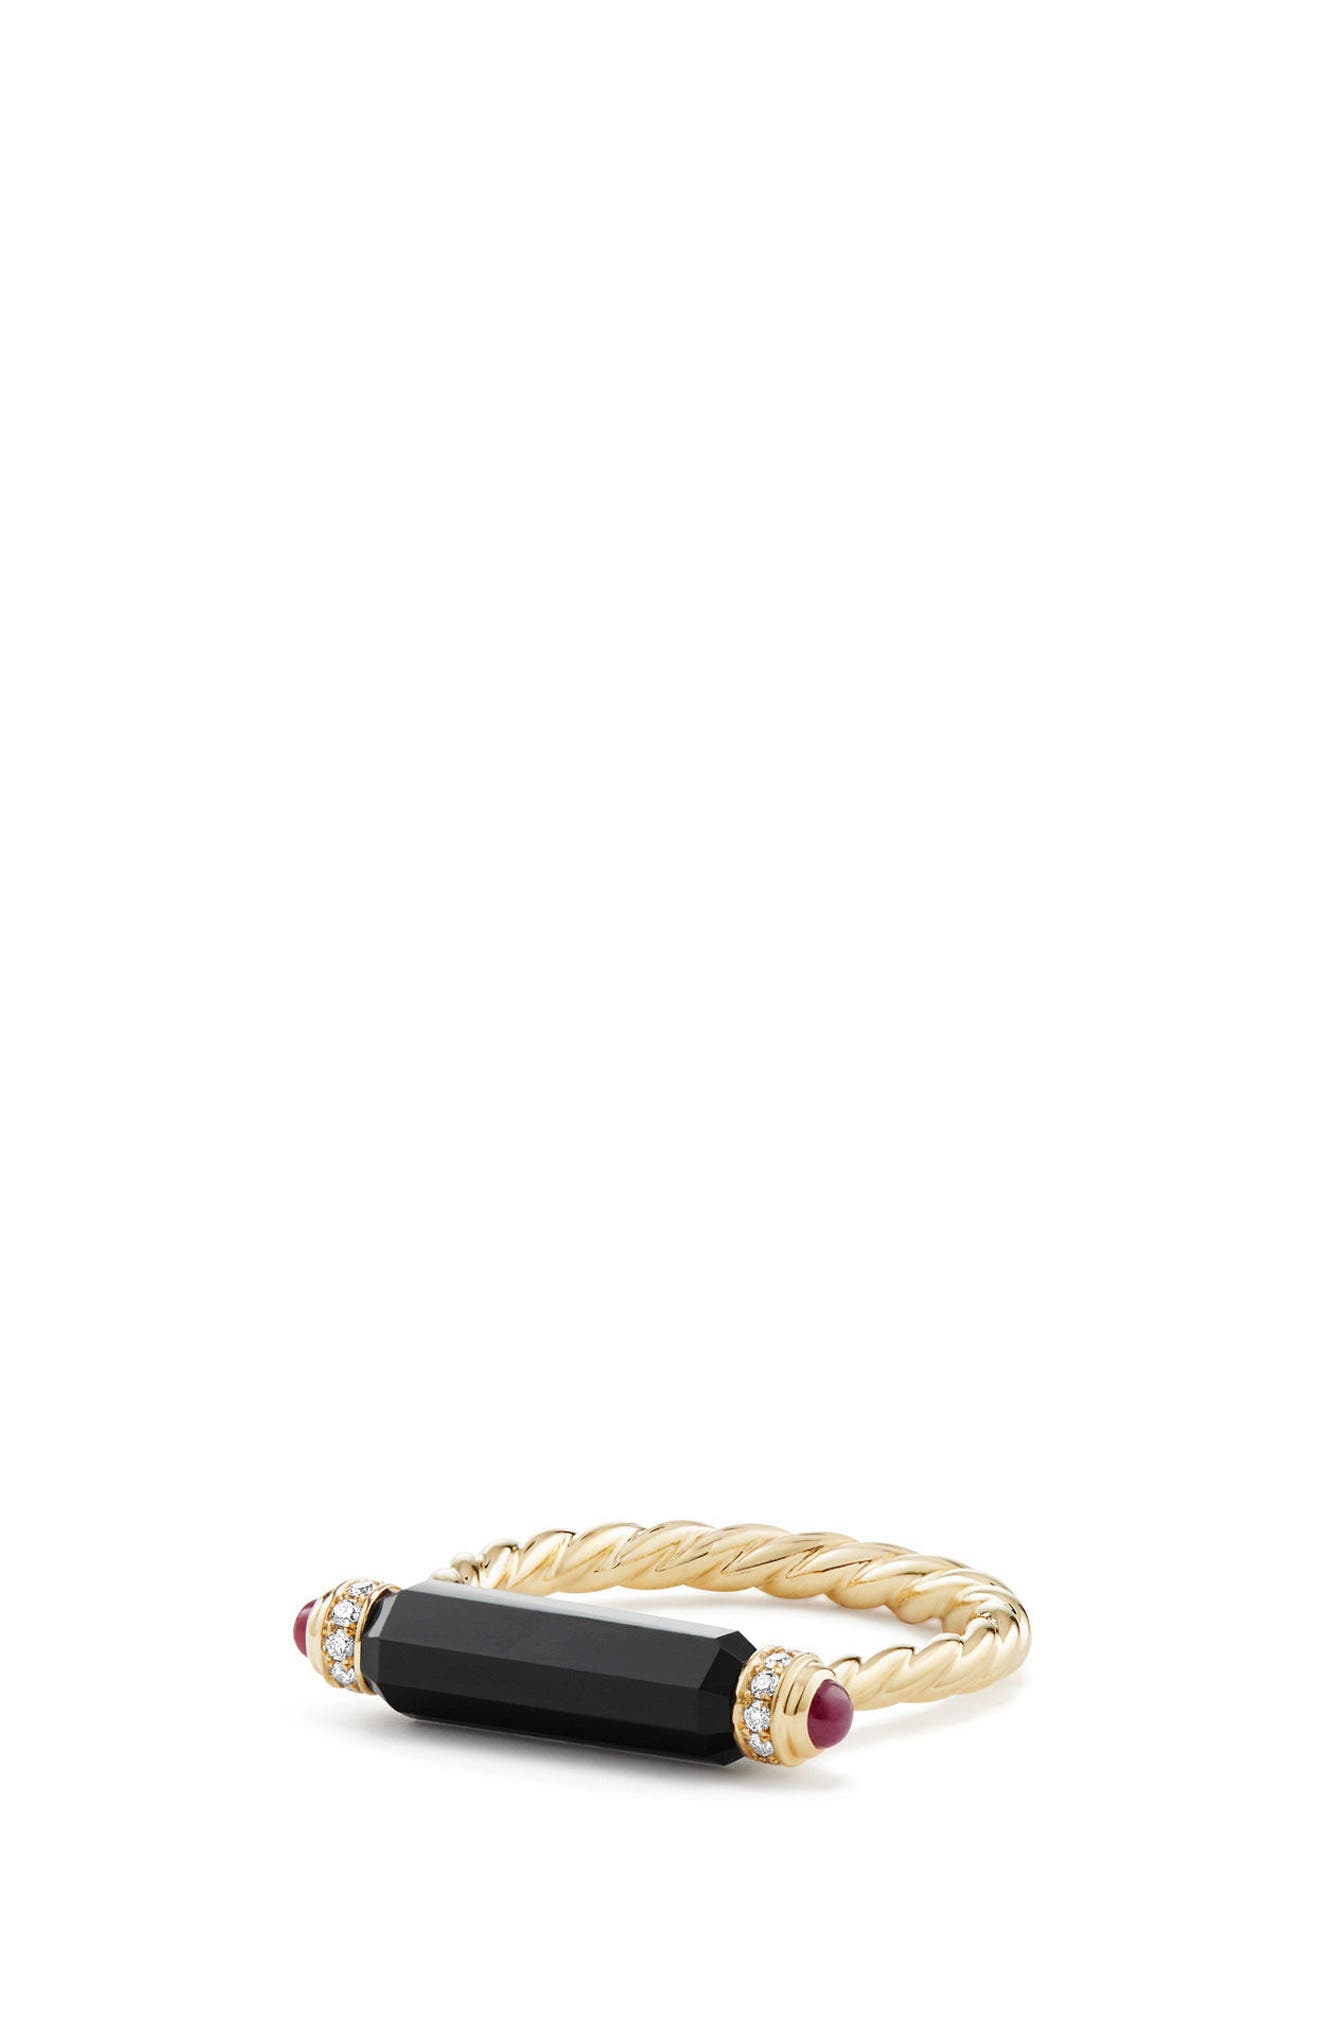 Barrels Ring with Diamonds in 18K Gold,                             Main thumbnail 1, color,                             BLACK ONYX